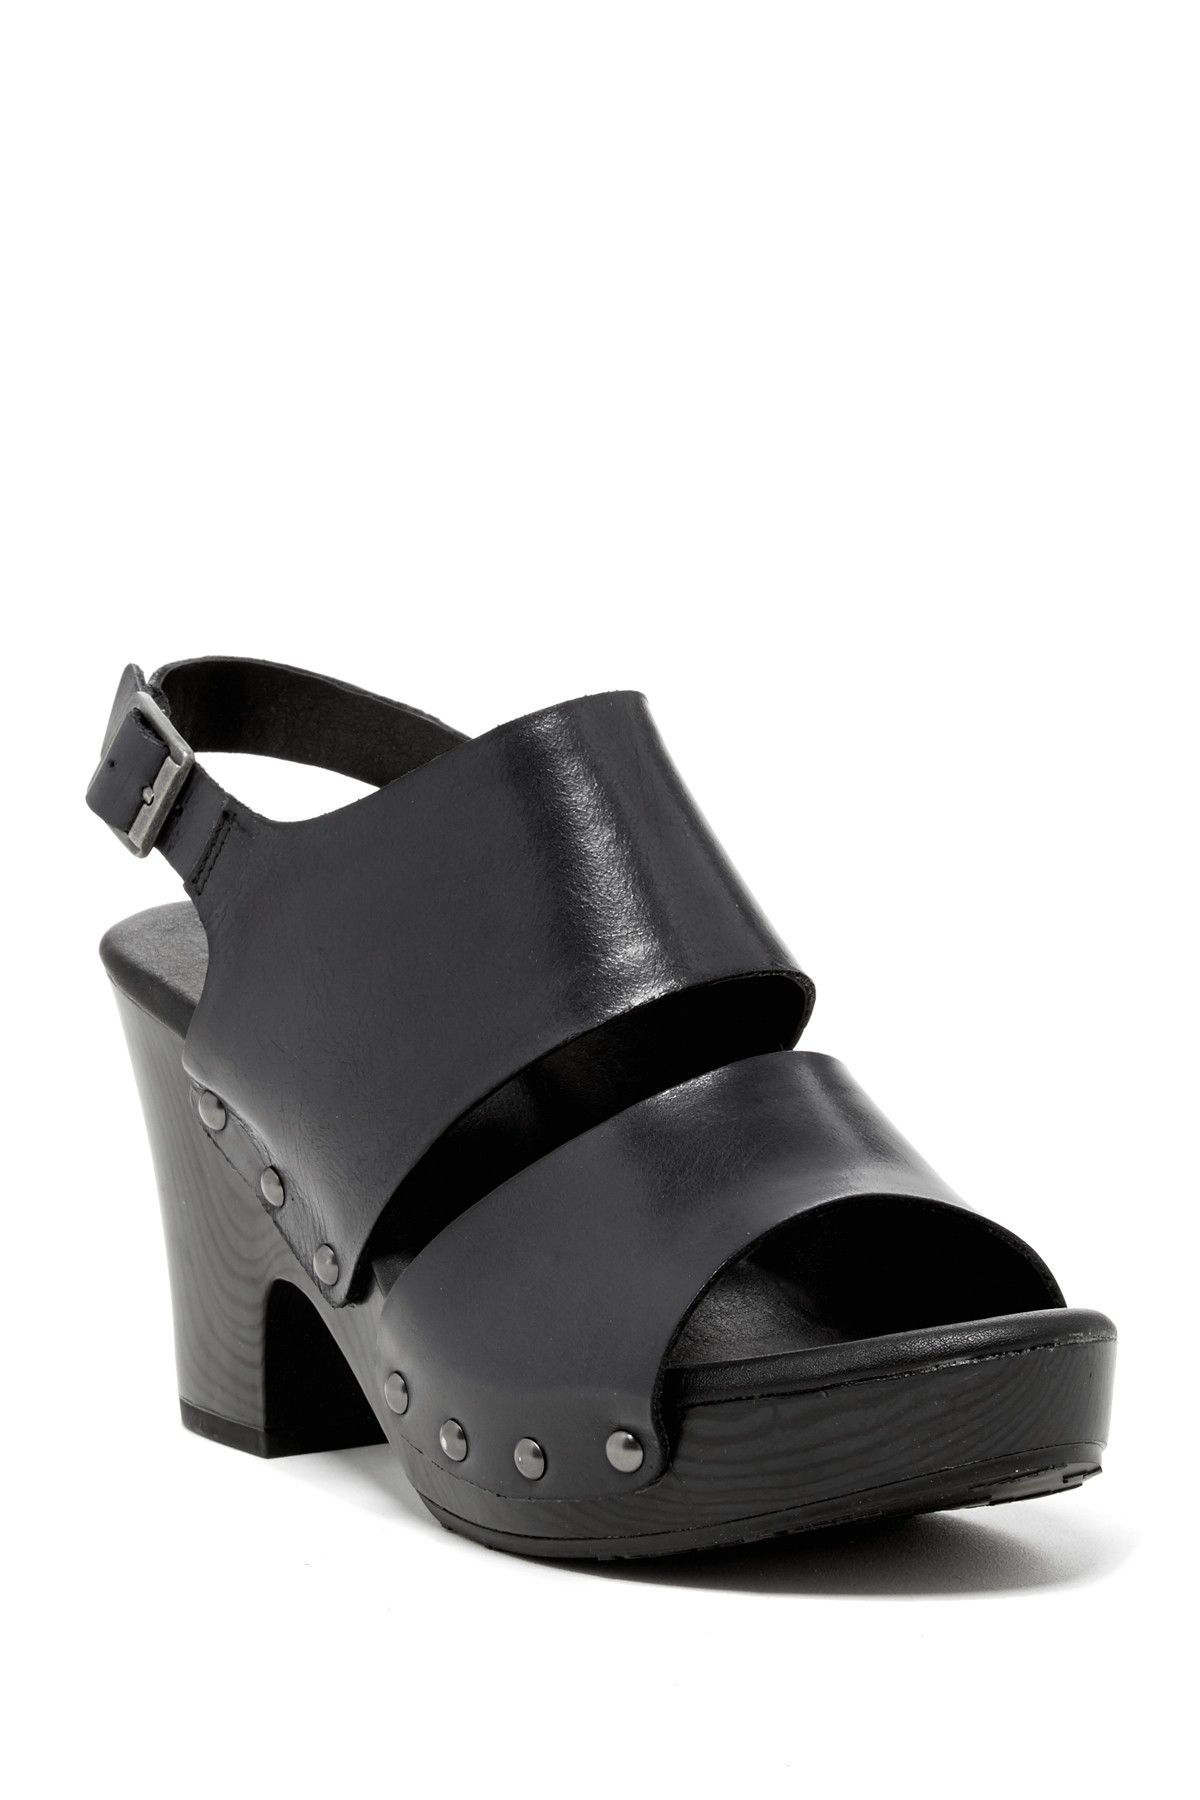 40d79eb51106f KORKS - Annaleigh Platform Clog at Nordstrom Rack. Free Shipping on orders  over  100.